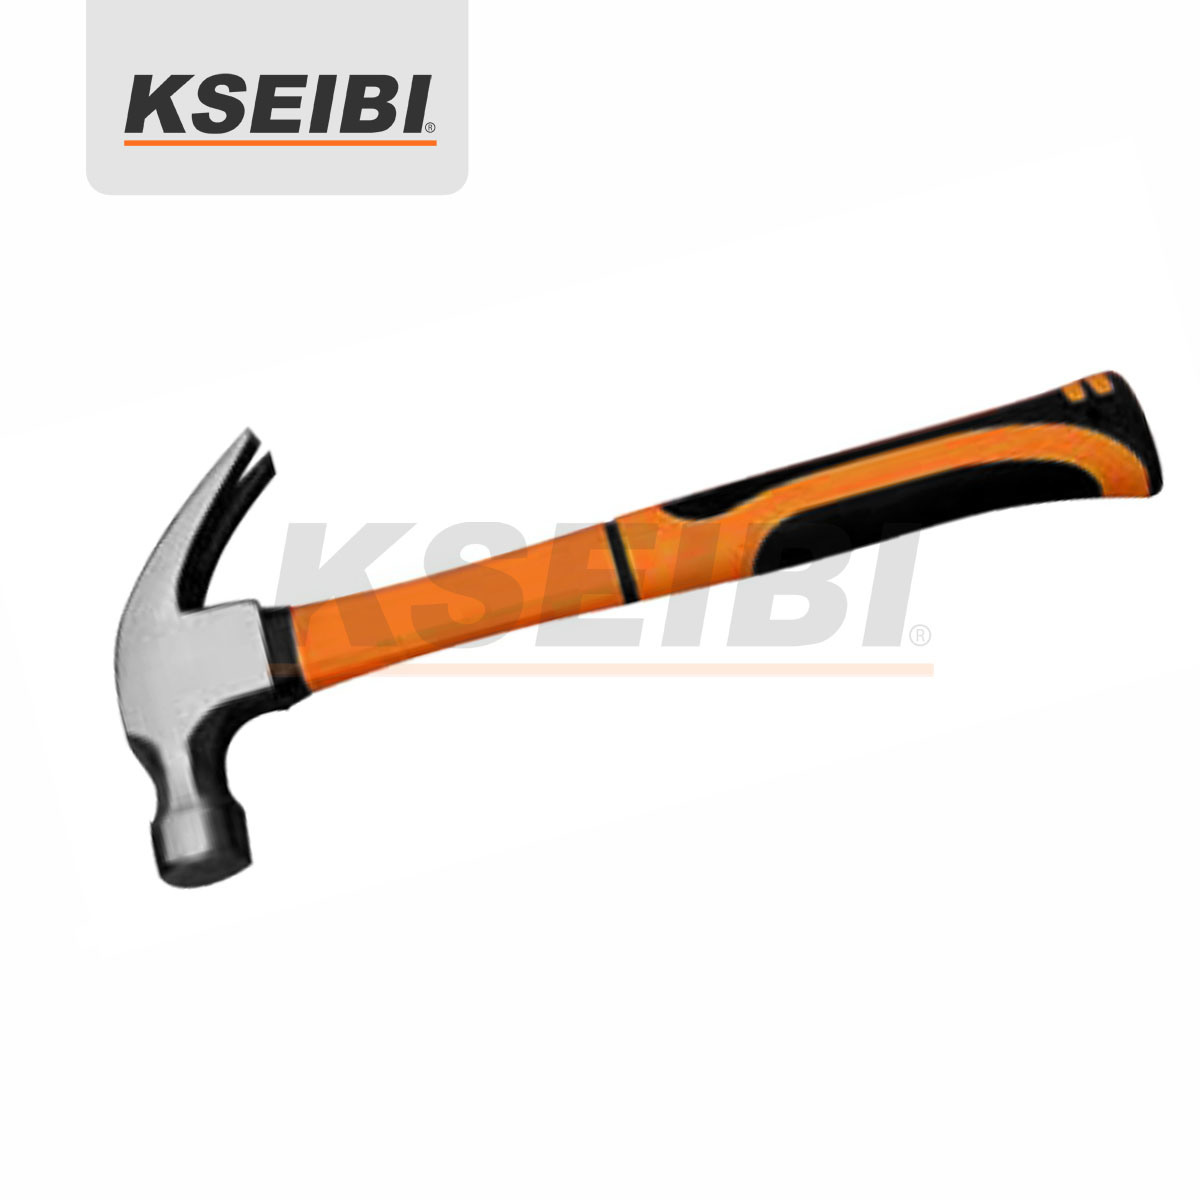 Kseibi Mater Curved/Straight Head Claw Hammer with Wooden Handle